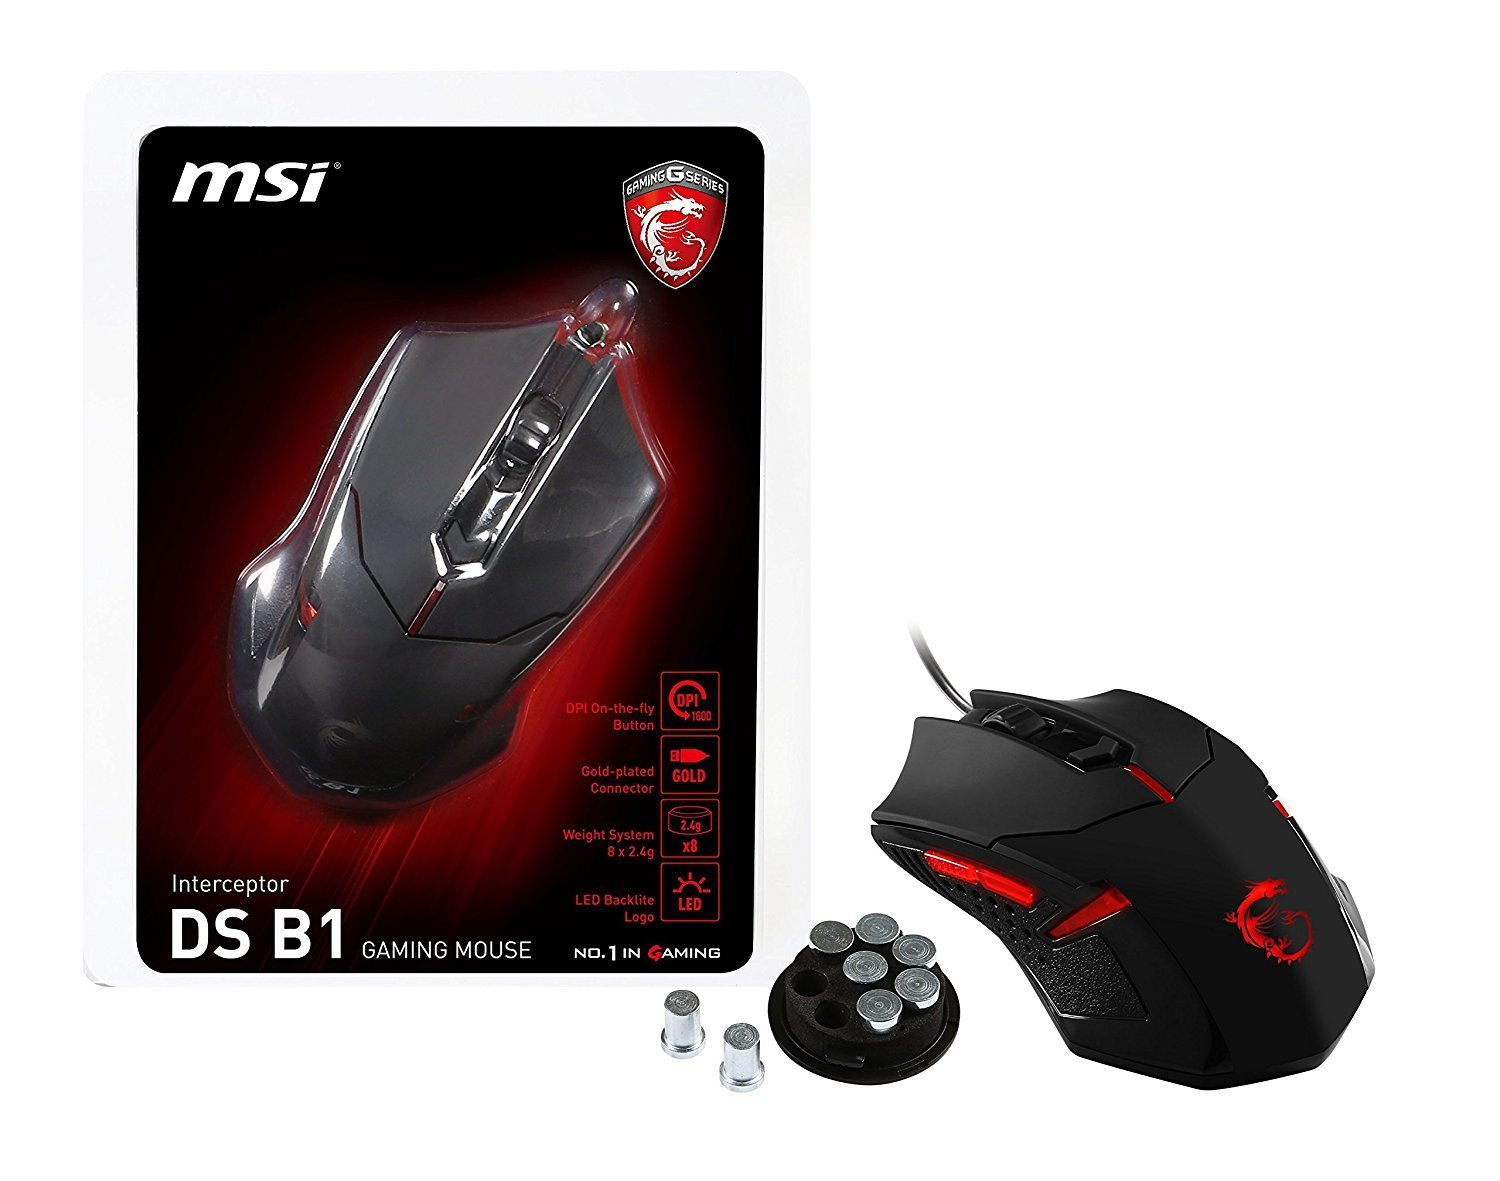 MSI DS B1 Gaming Mouse - Wired